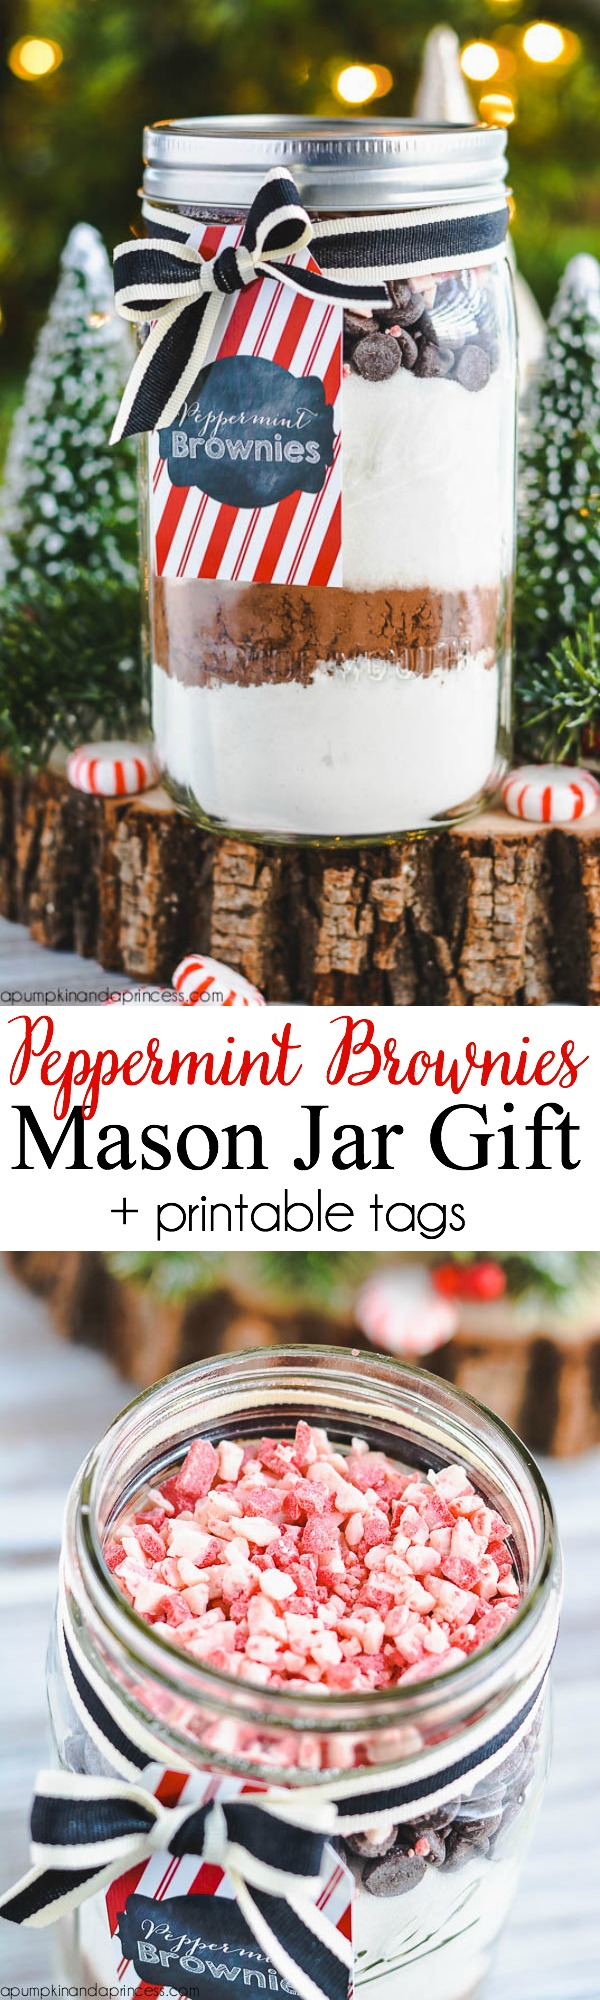 Peppermint Brownie Mix - Mason Jar Gift